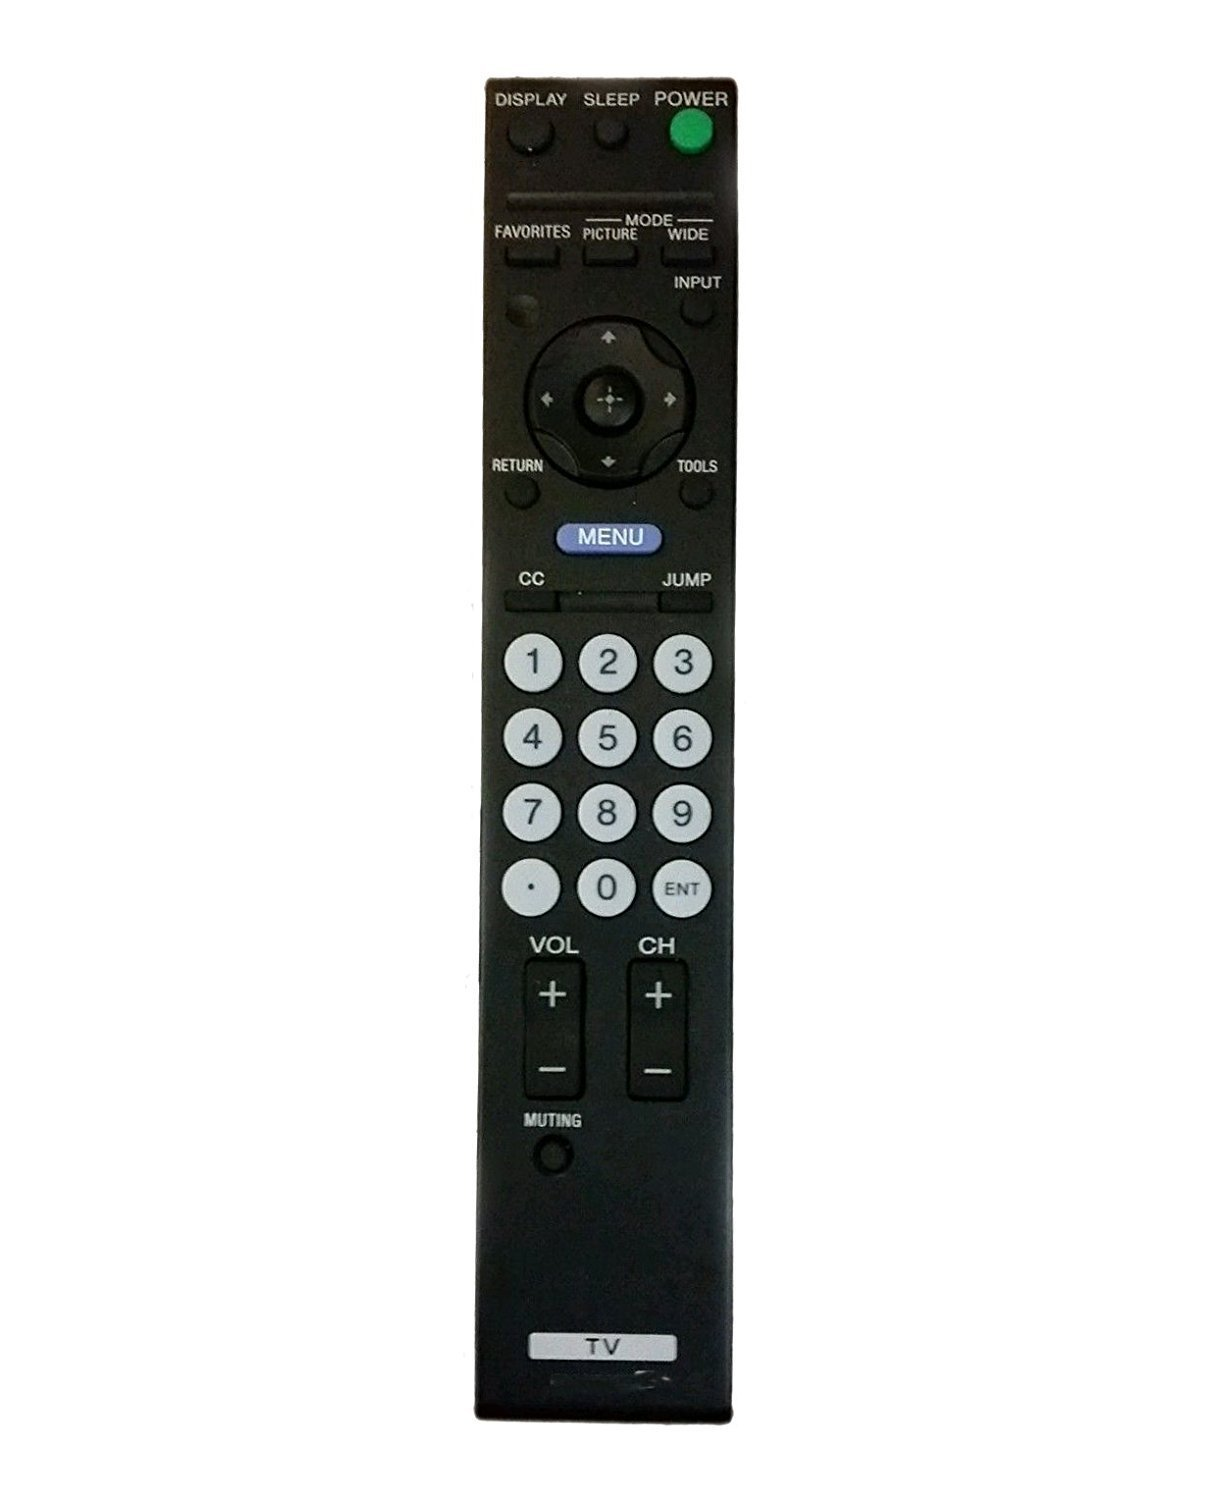 LR General Remote Control Fit For RM-YD025 KDL-19M4000 KDL-22L4000 KDL-40S4100 KDL-52S4100 KDL-46S4100 KDL-40S4100 KDL42V4100 long-run